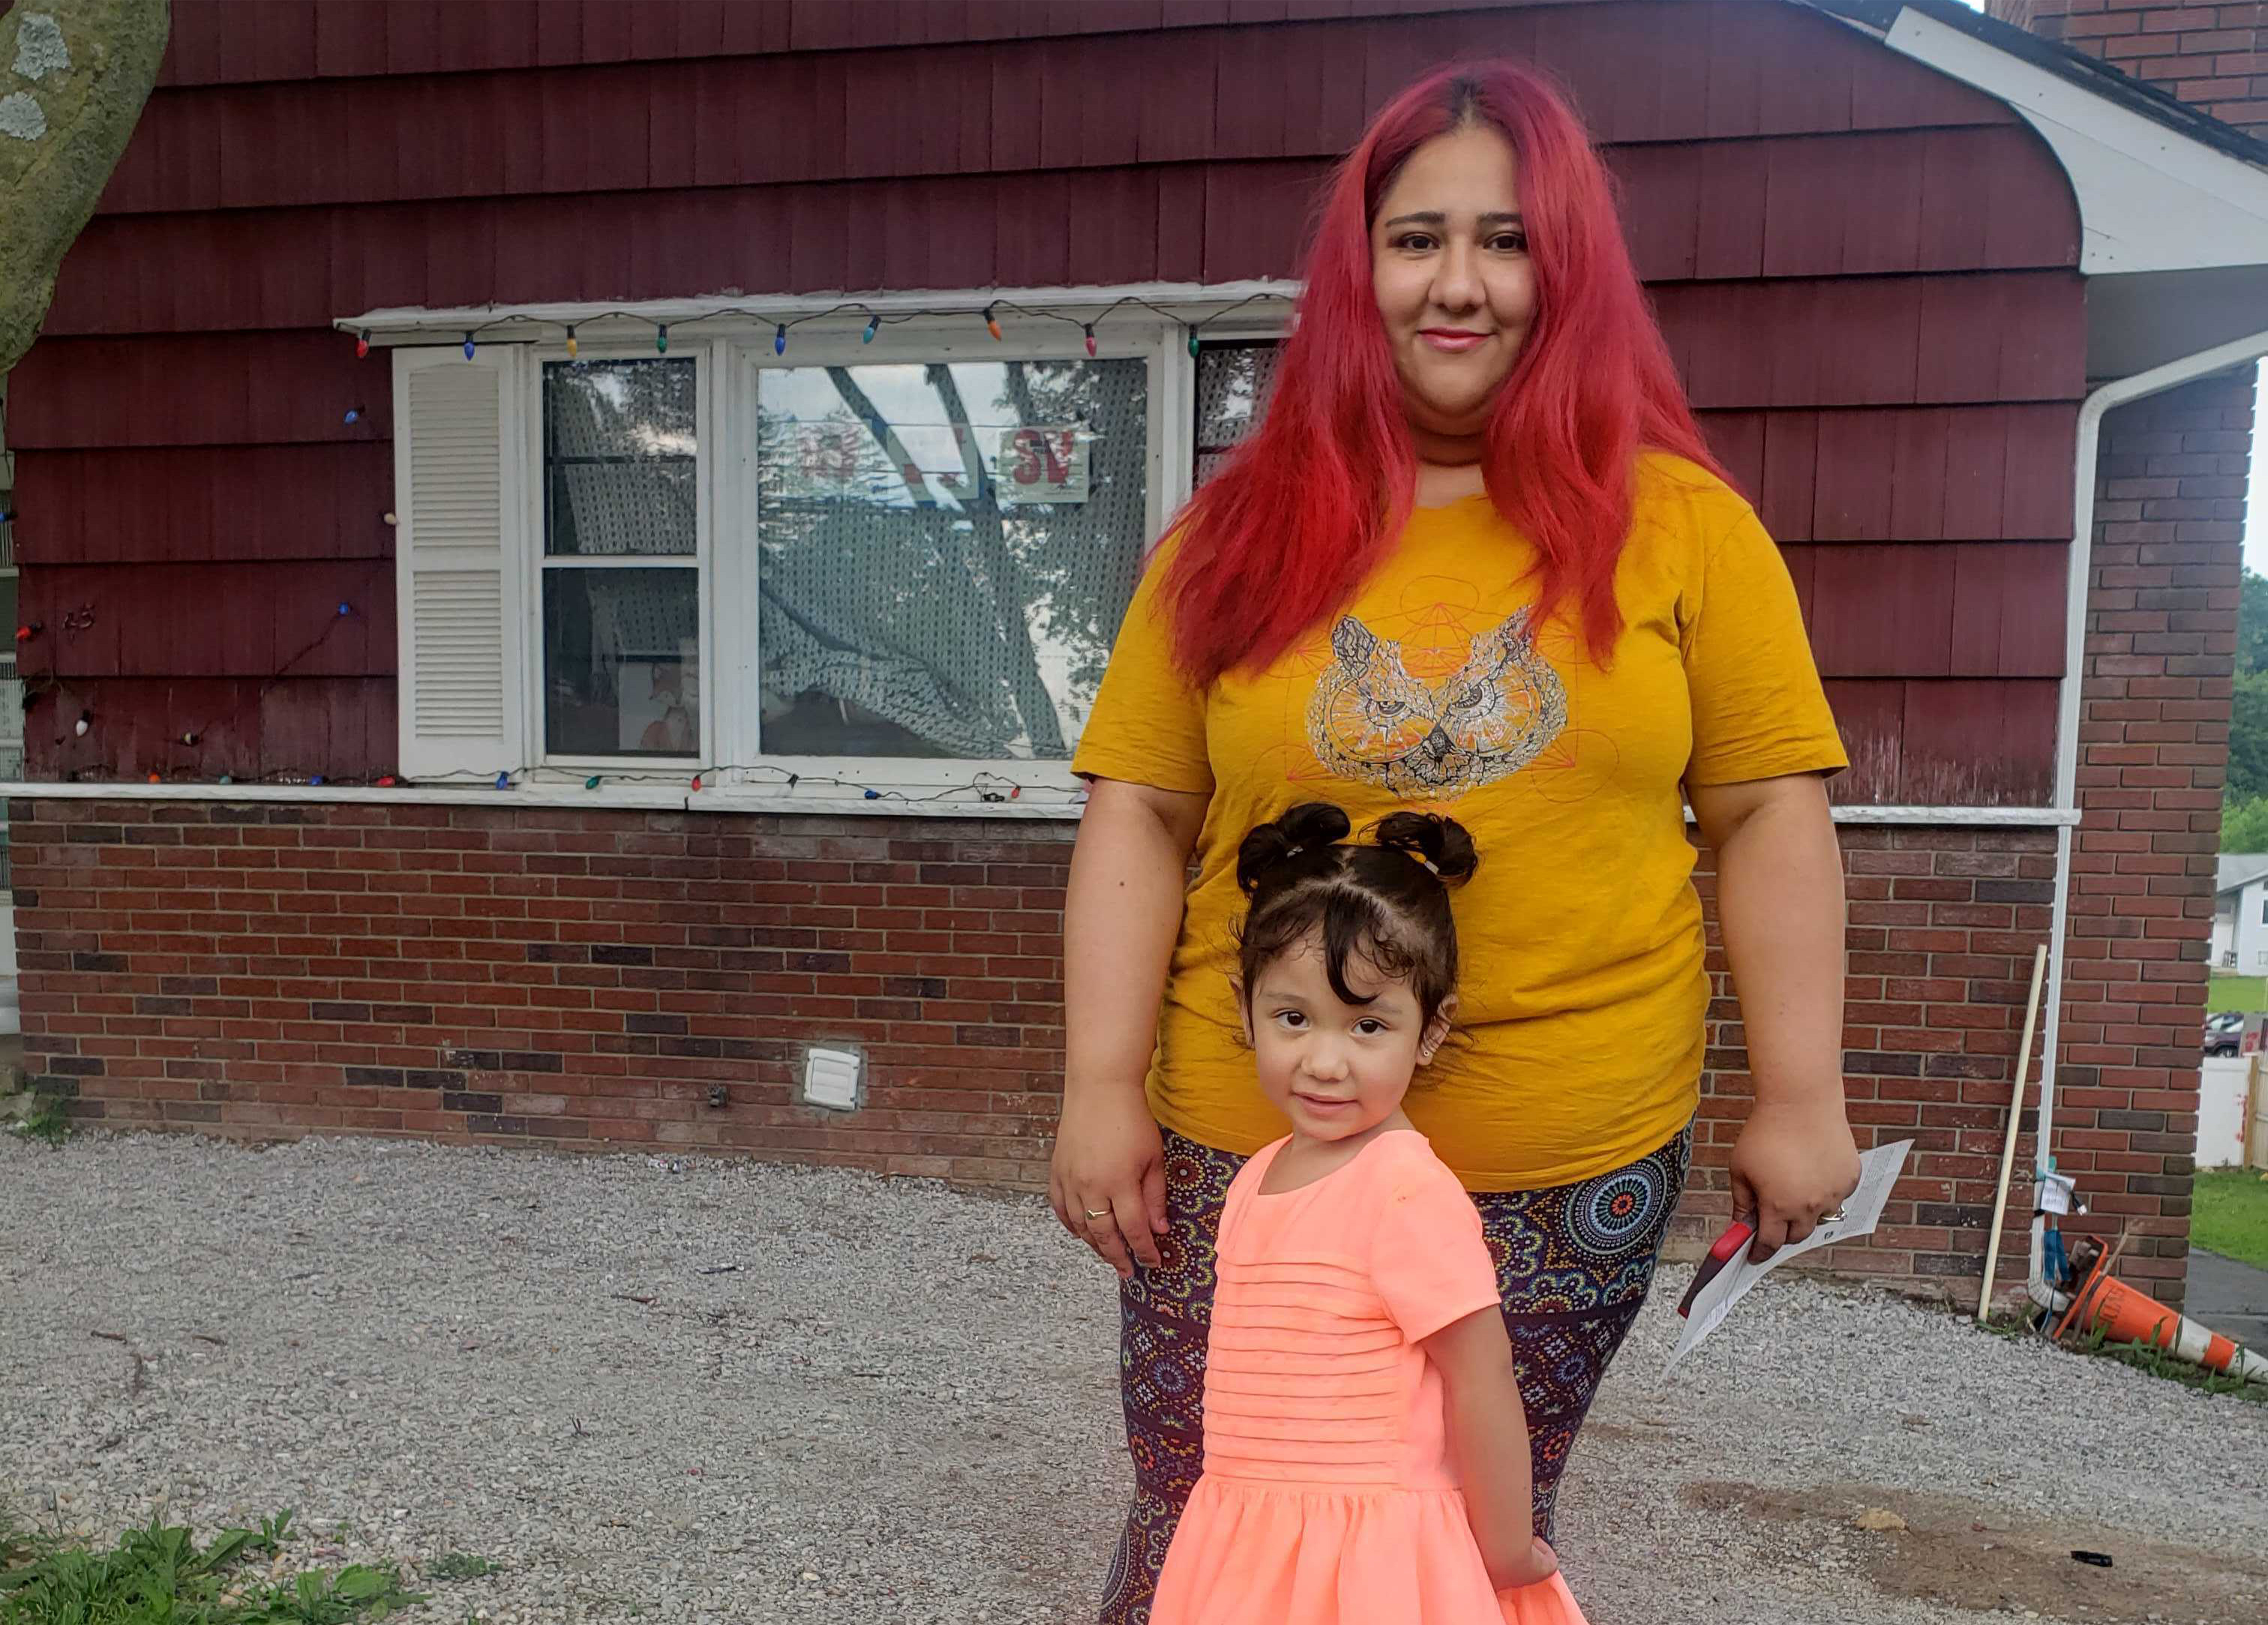 Ana Maeda Gonzalez has red hair and is wearing a yellow t-shirt and her young daughter stands in front of her, wearing a pink dress. They are standing in front of a red house.